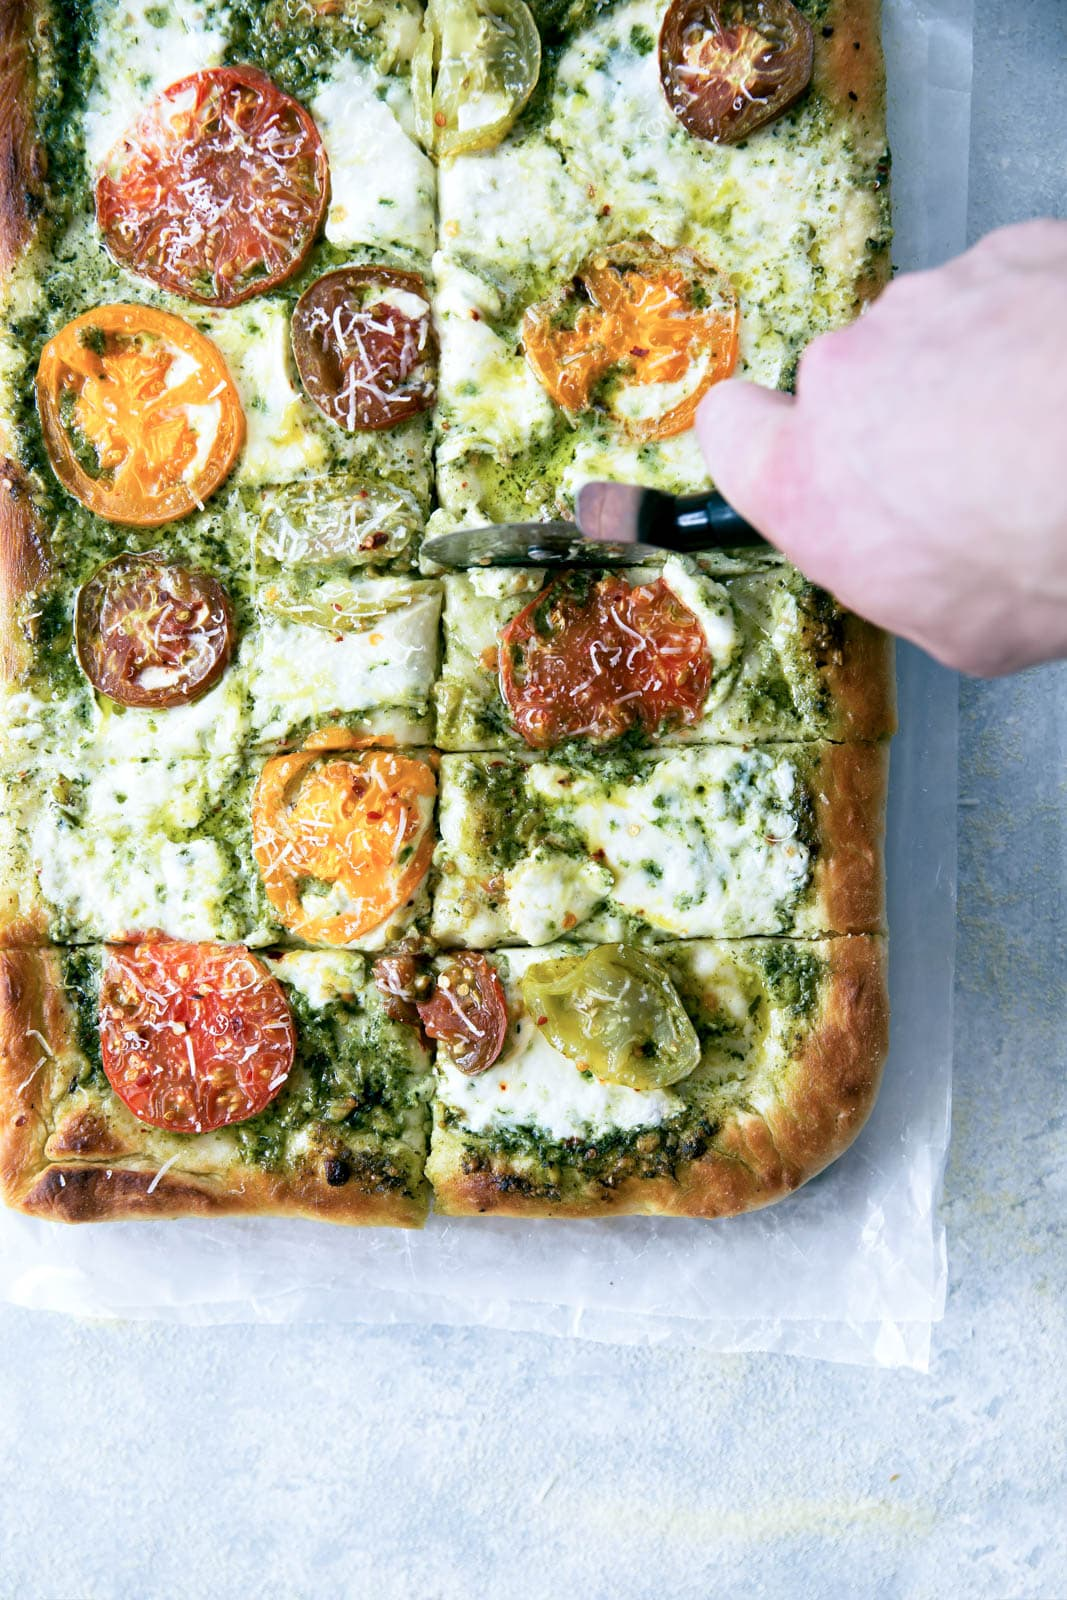 Say goodbye to heirloom tomato season with this ridiculously addicting heirloom tomato pesto pan pizza!